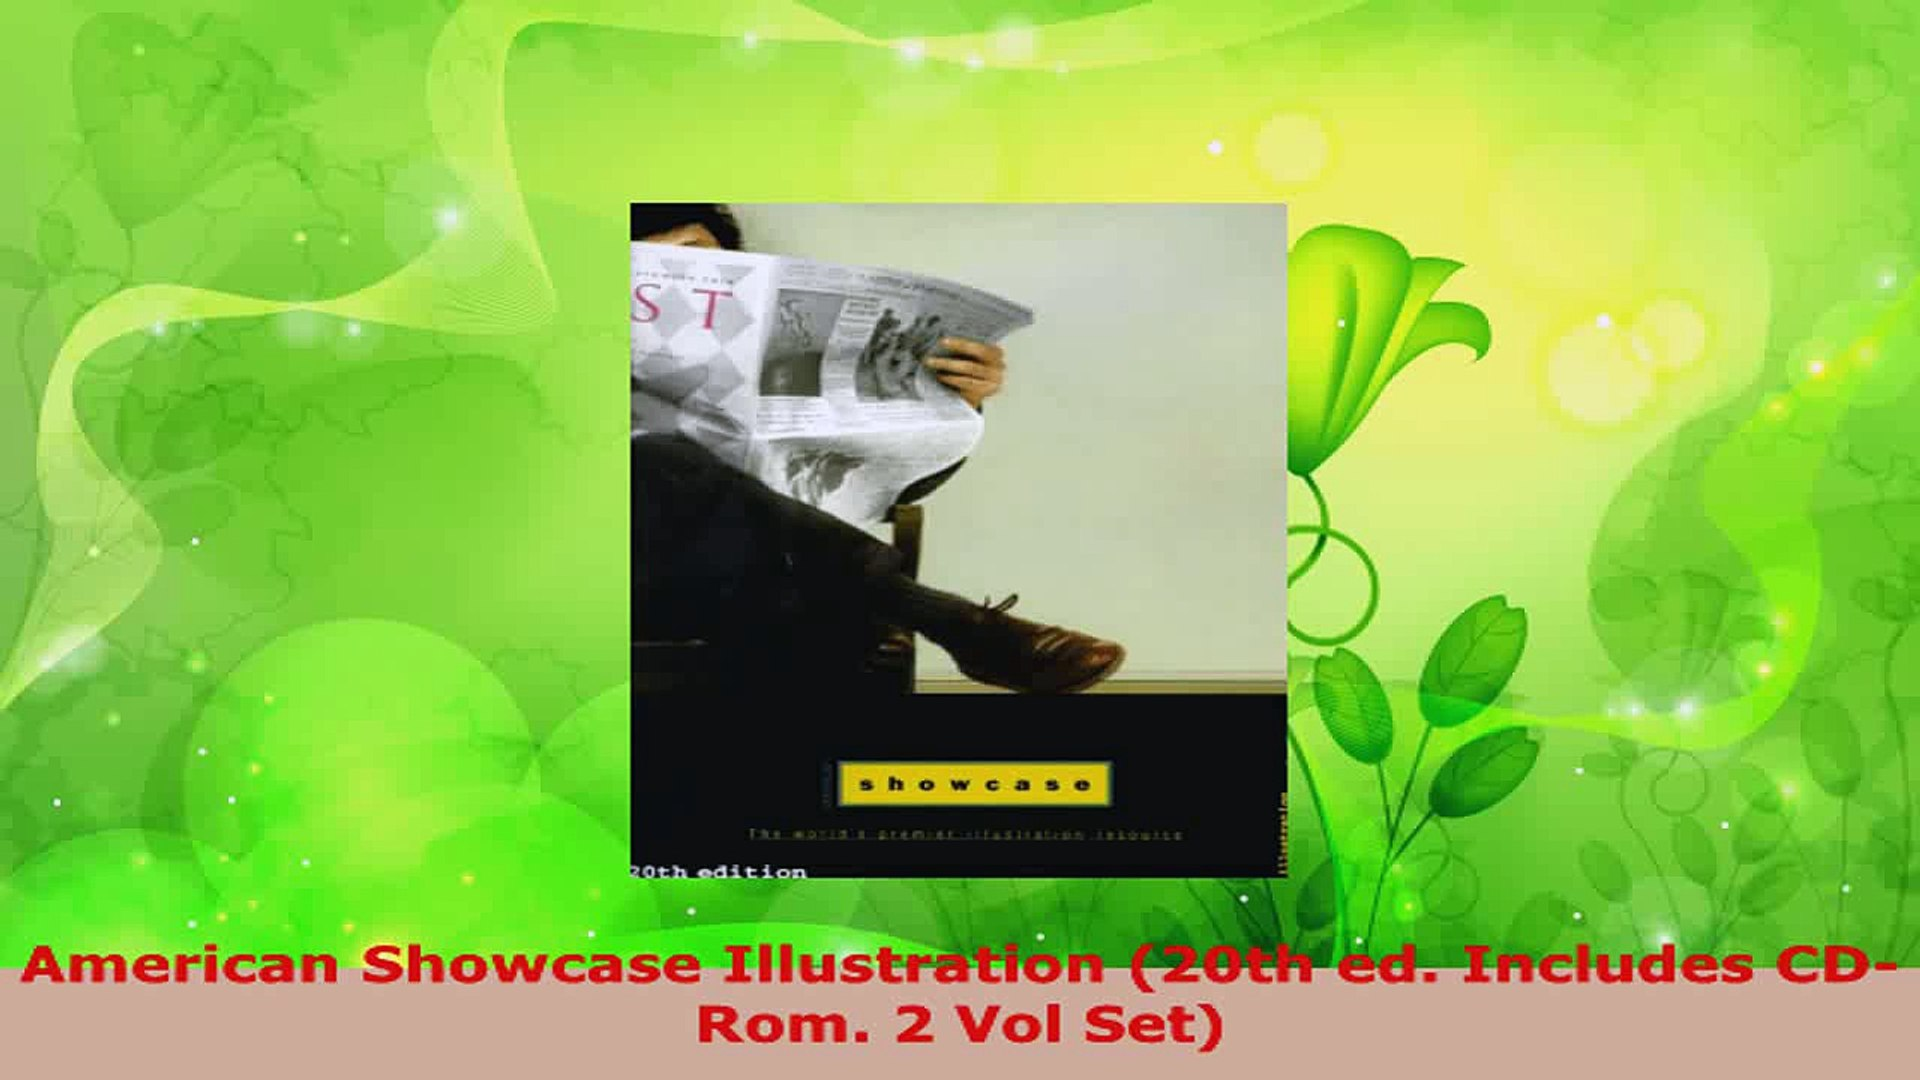 Read  American Showcase Illustration 20th ed Includes CDRom 2 Vol Set EBooks Online